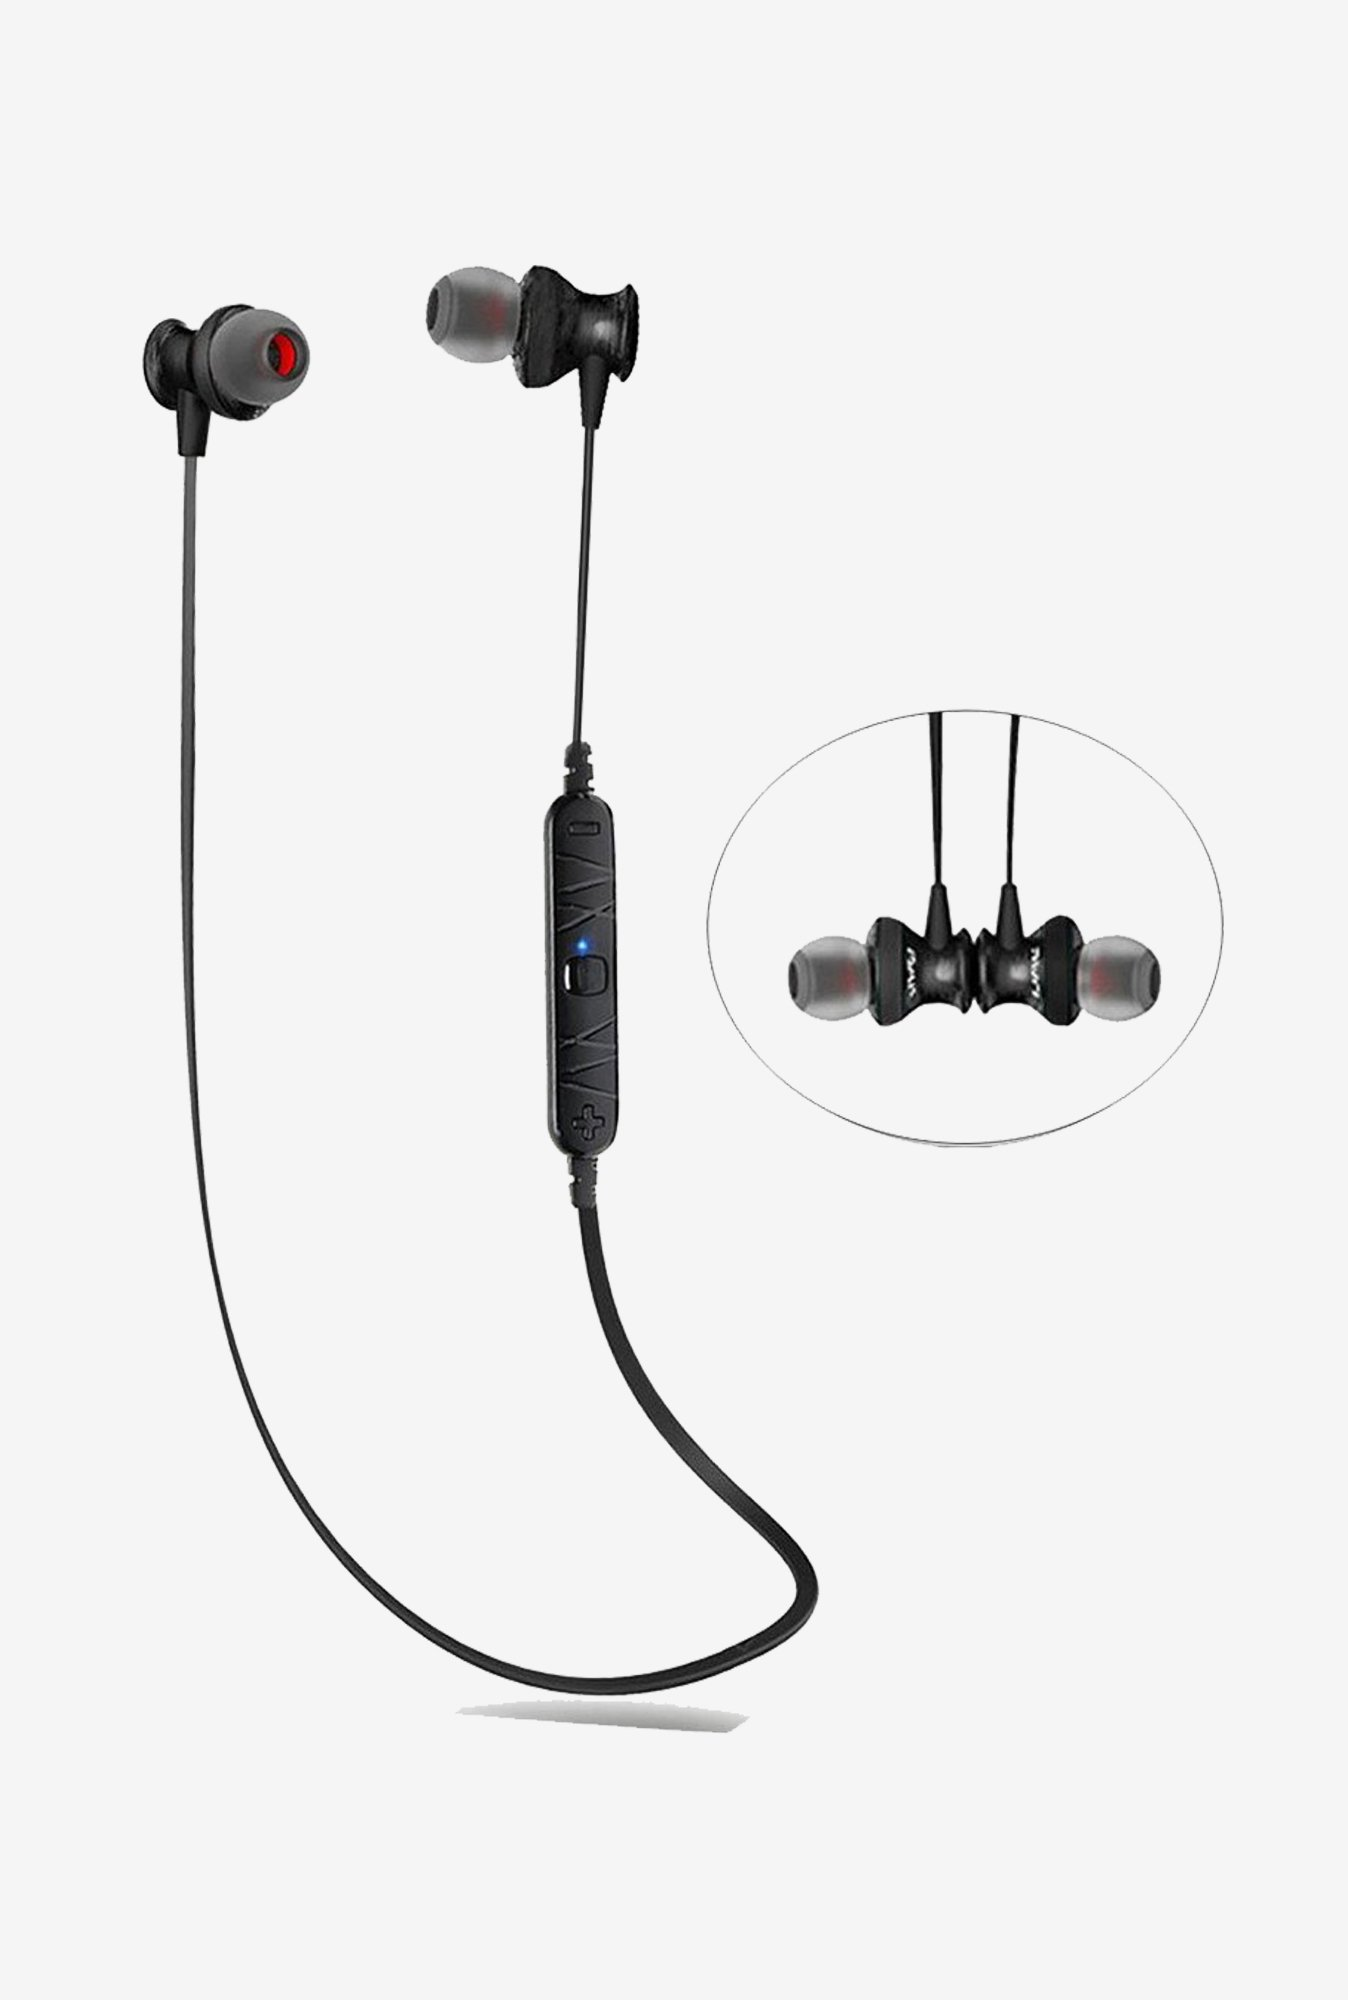 Generic hs037-bk MoreTeam Wireless In The Ear Headphone